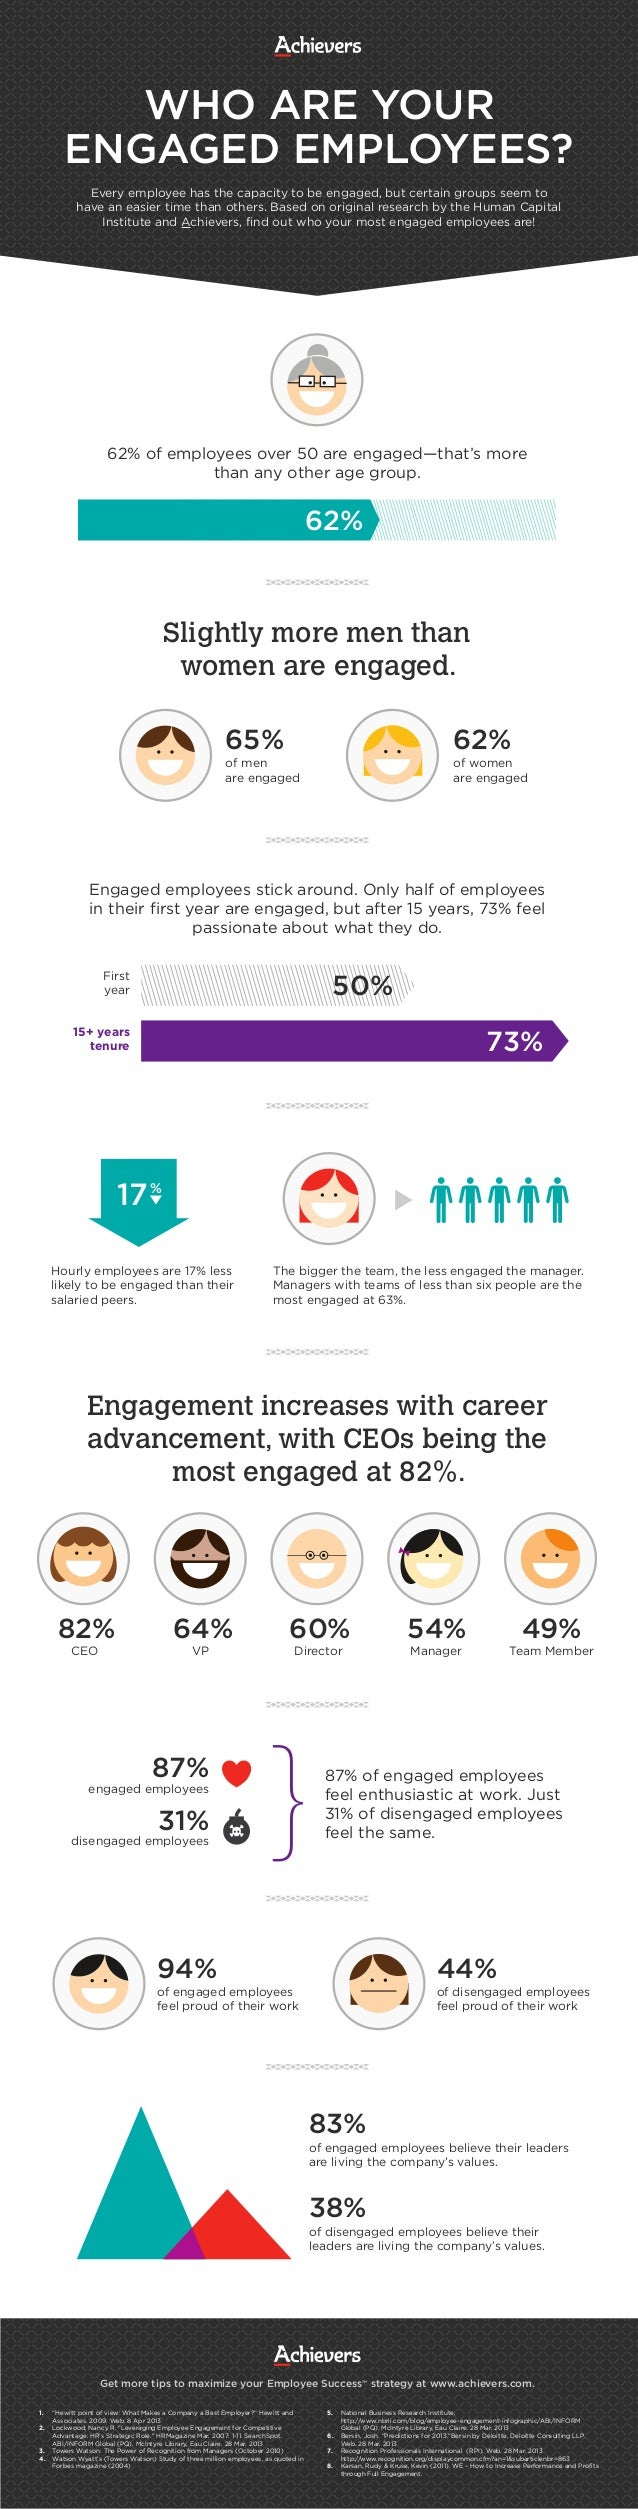 Who are your engaged employees? Infographic